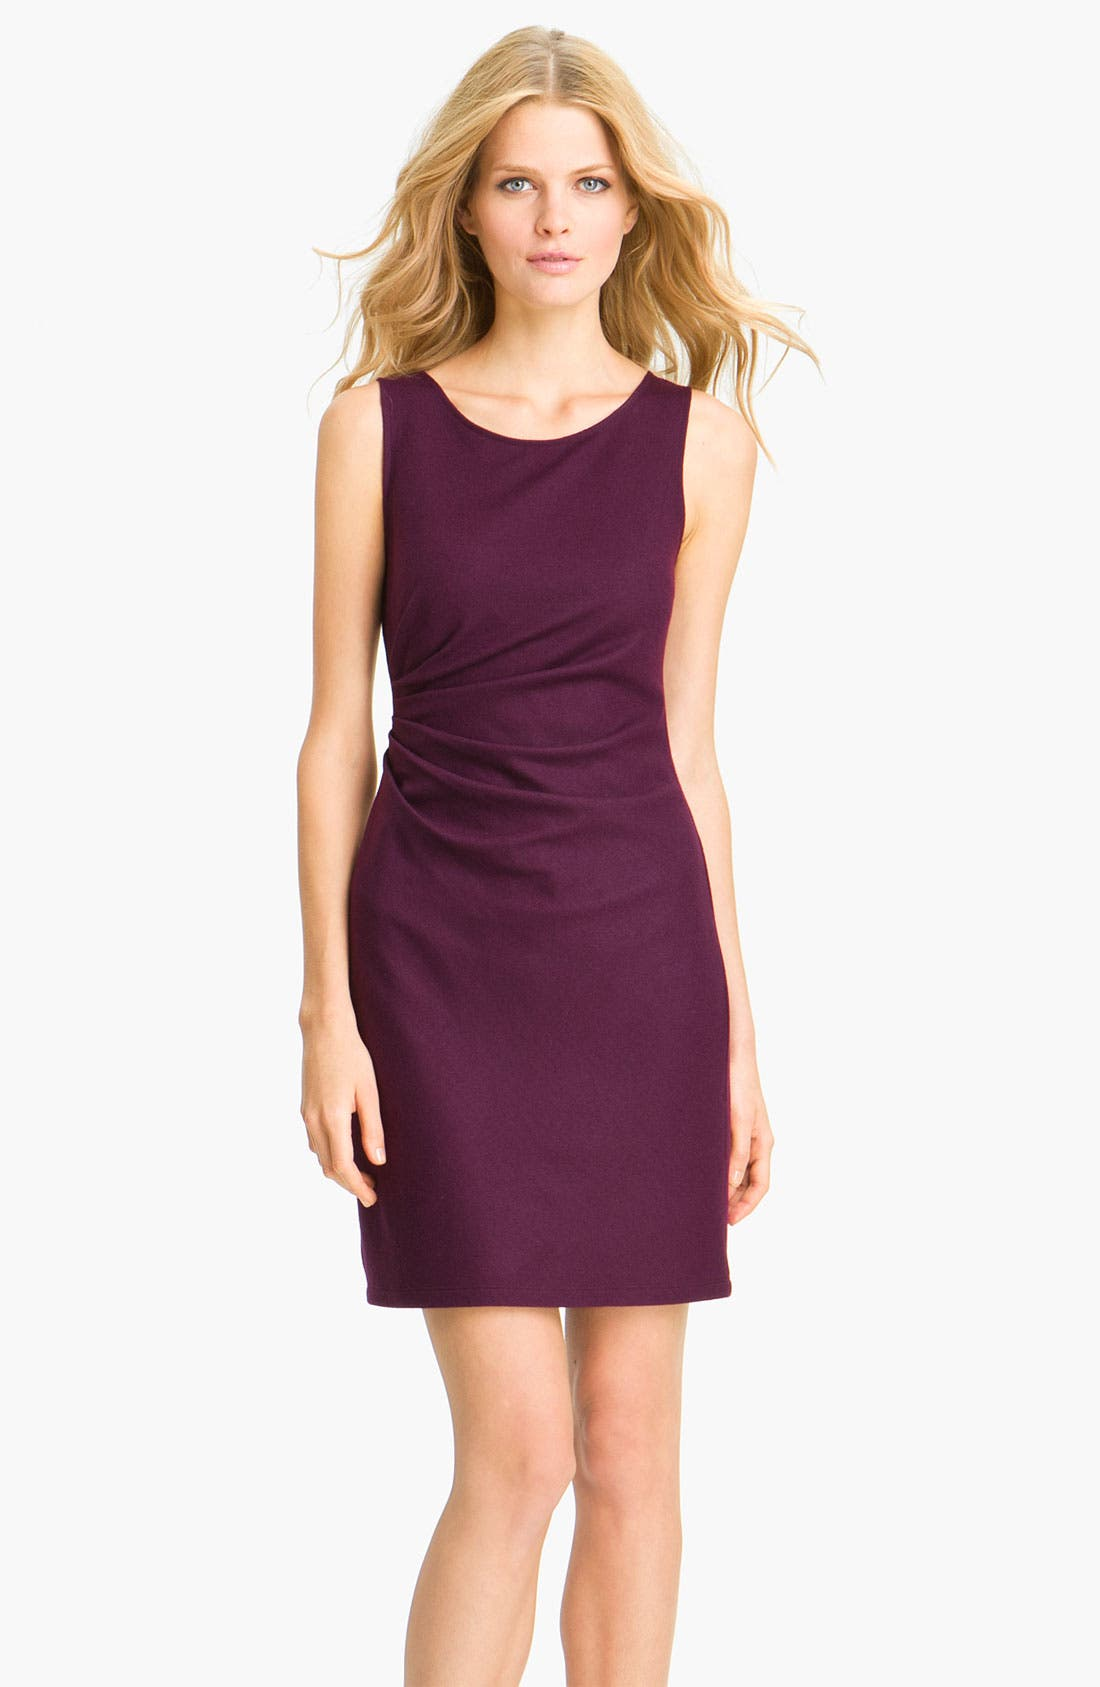 'Meily K. - Victorious' Wool Shift Dress,                             Main thumbnail 1, color,                             Syrah